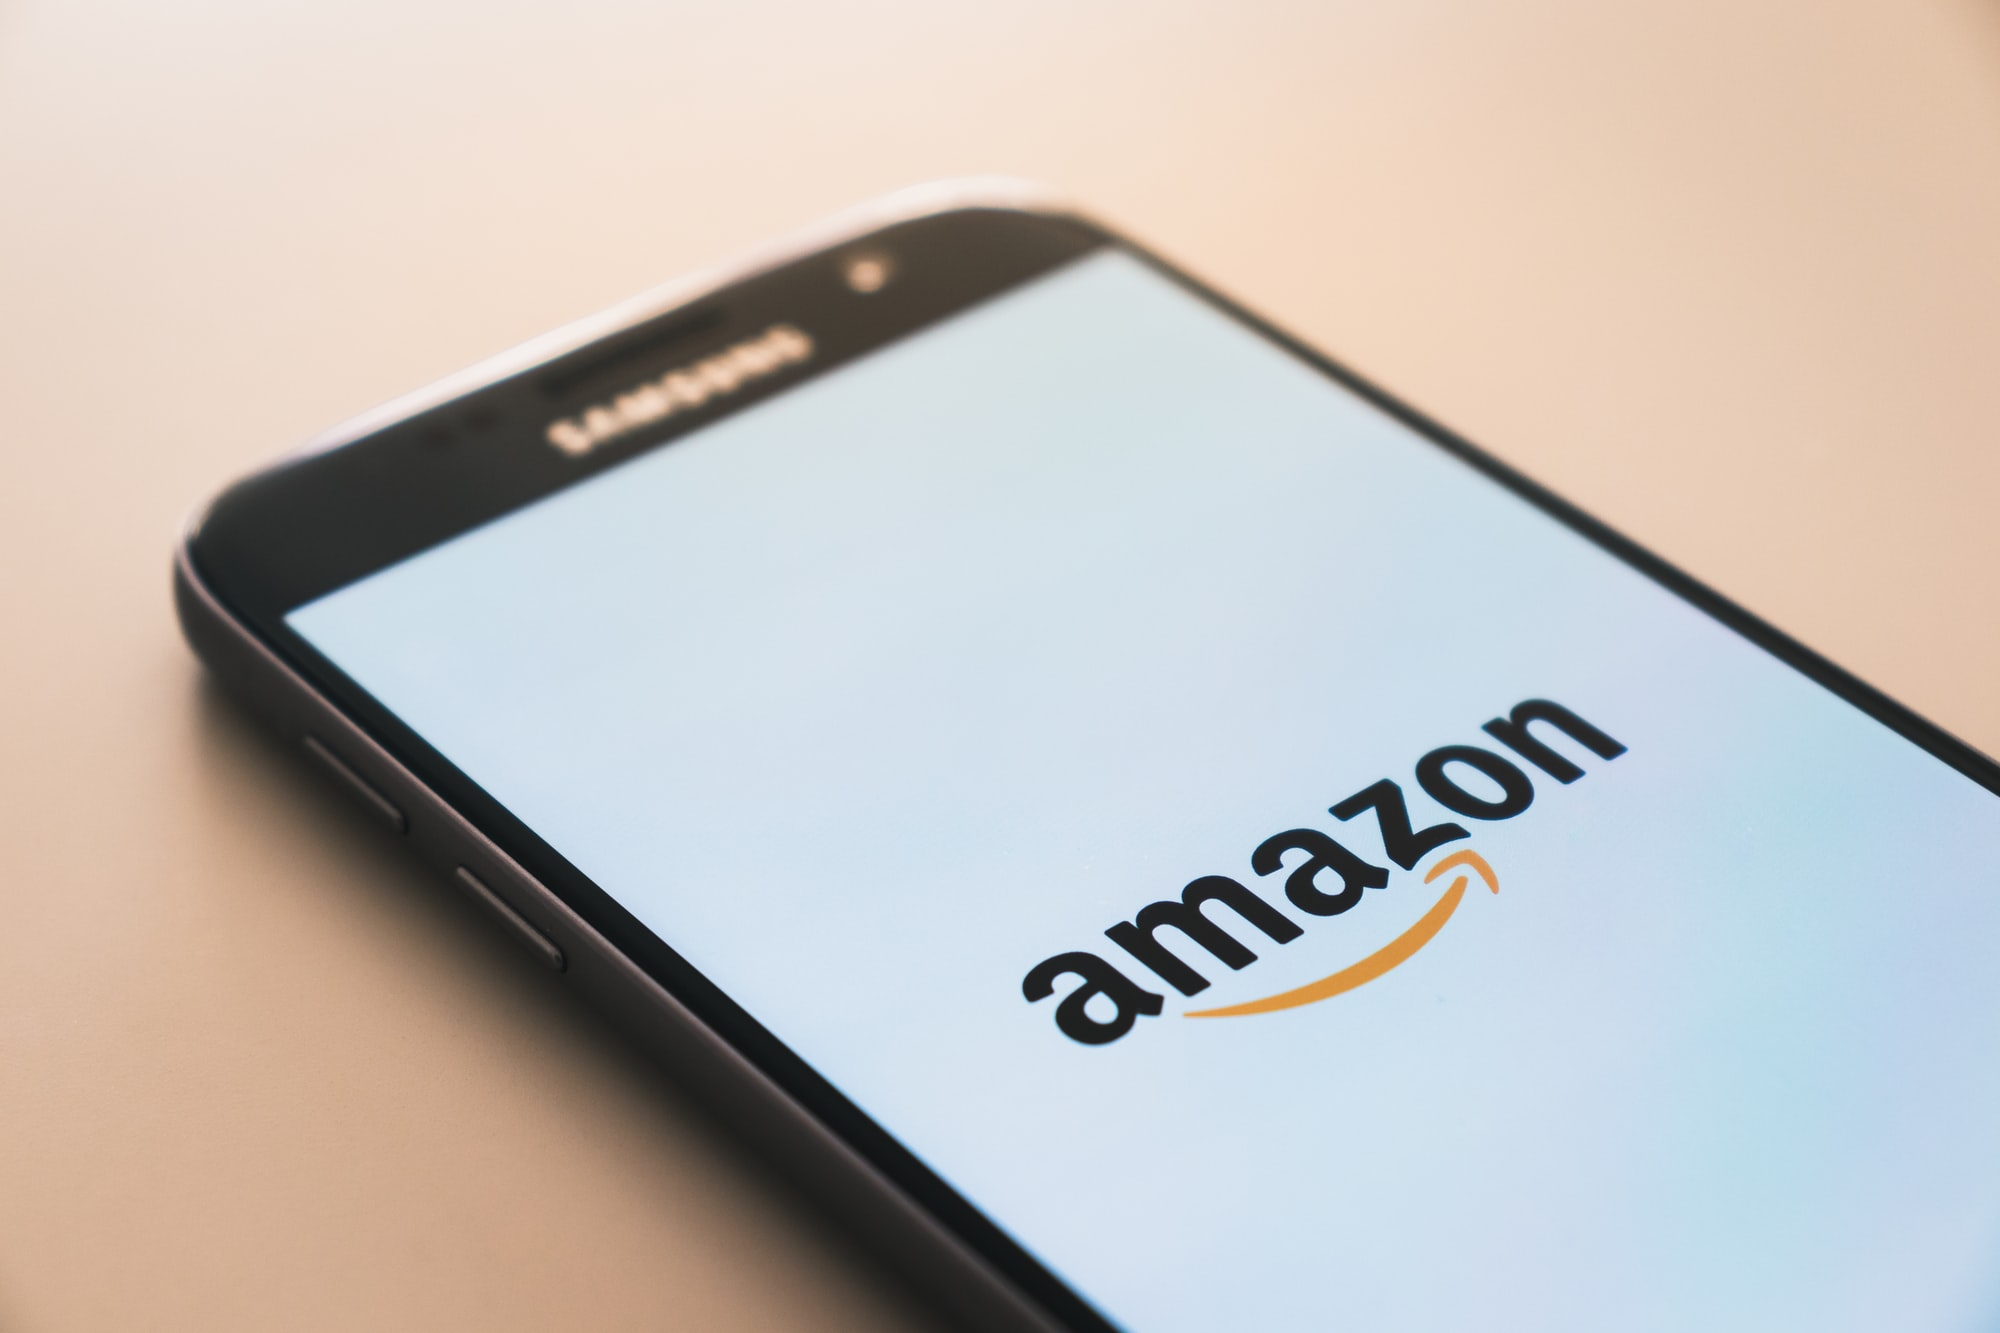 Does Selling on Amazon Work?